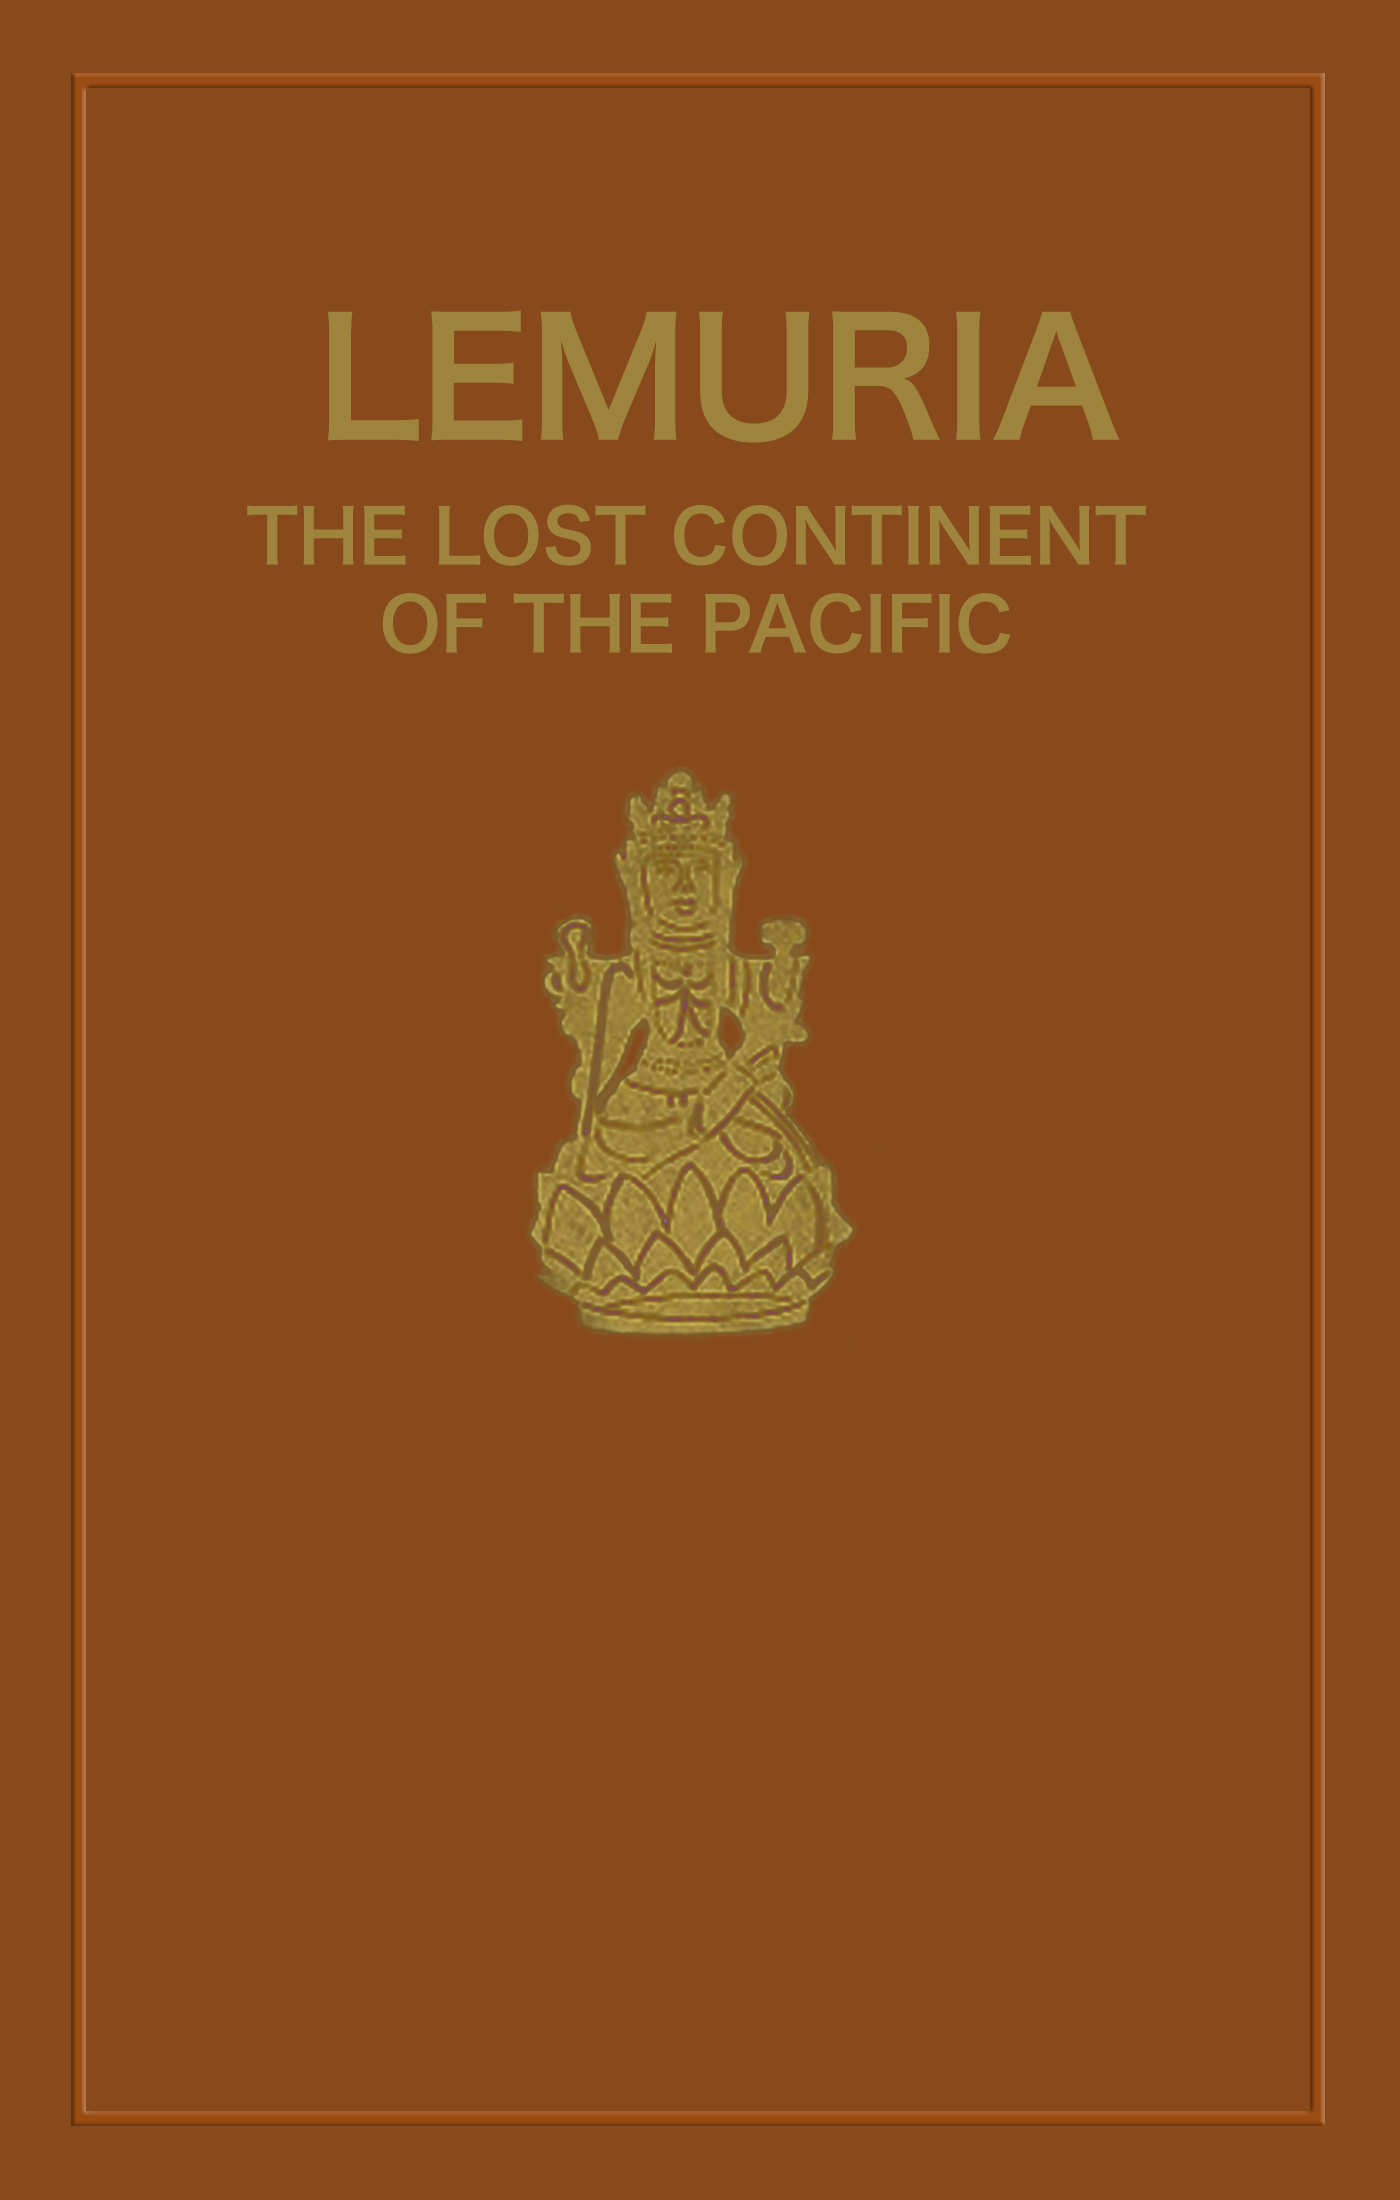 Lemuria The Lost Continent Of The Pacific By Wishar Cerv And James